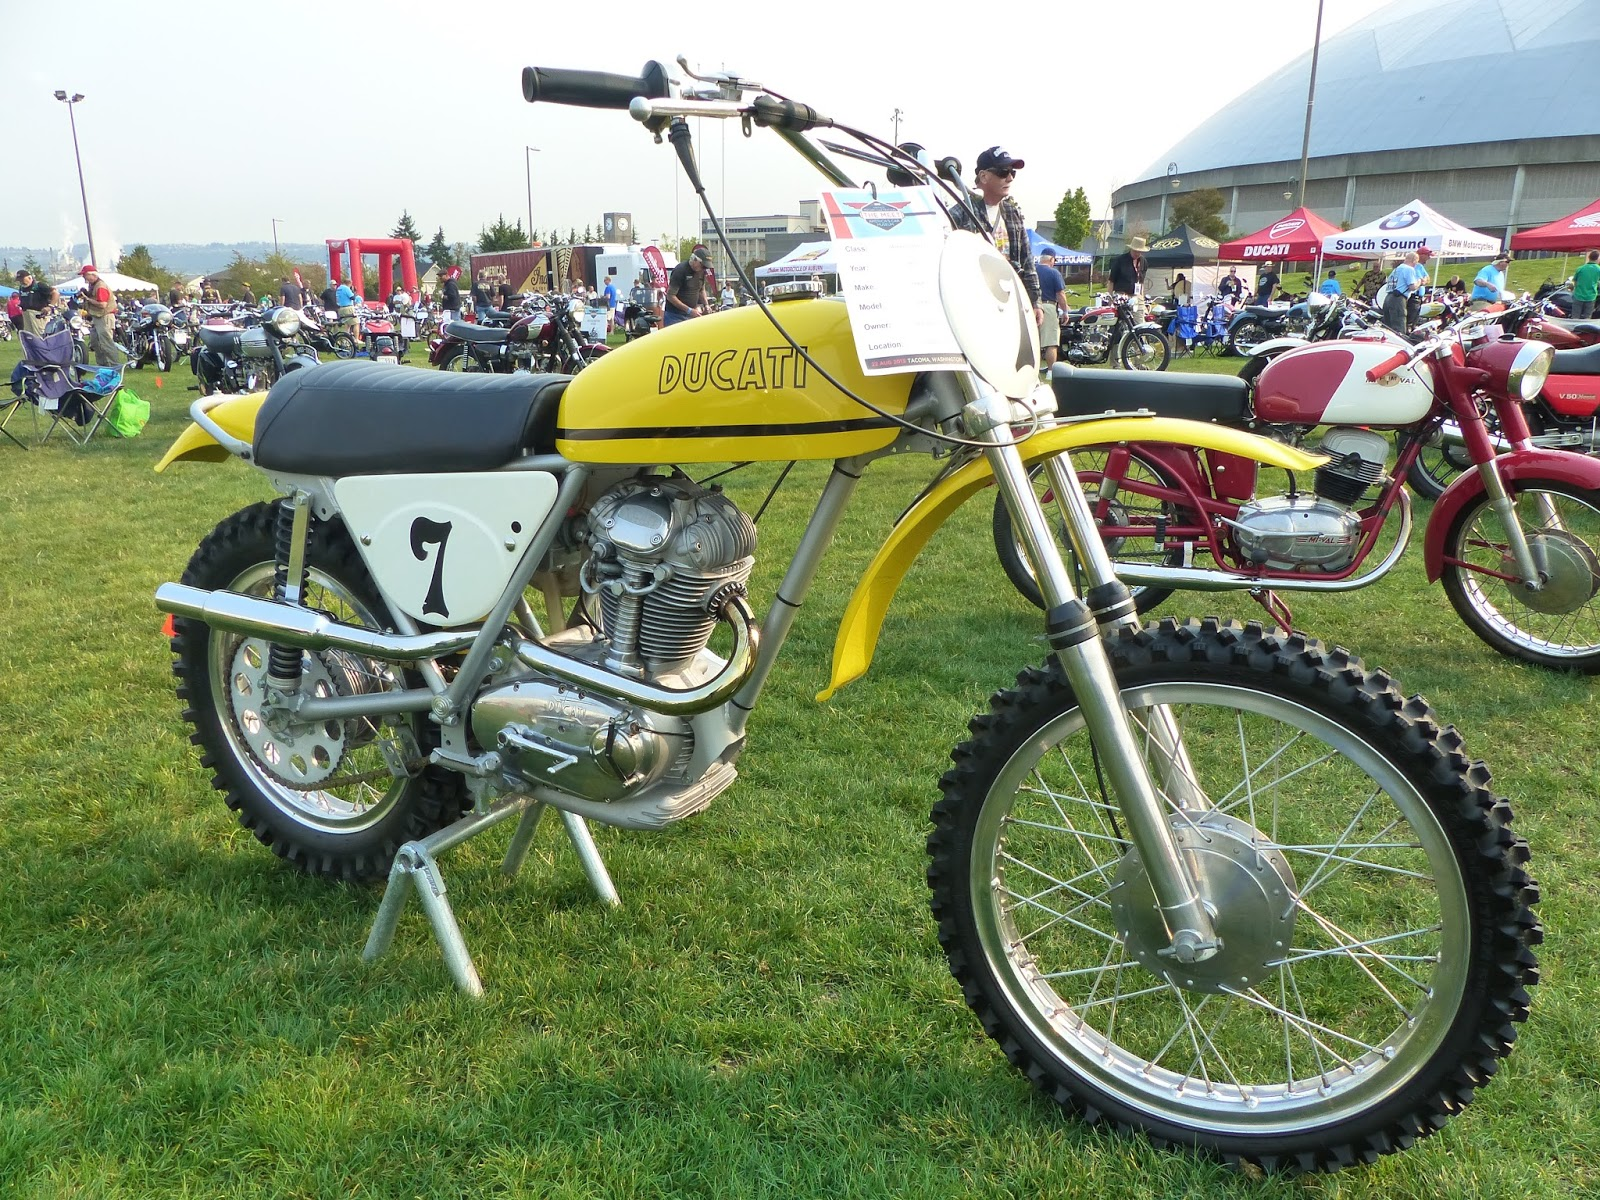 "oldmotodude: 1971 ducati 450 rt on display at ""the meet"" 2015"